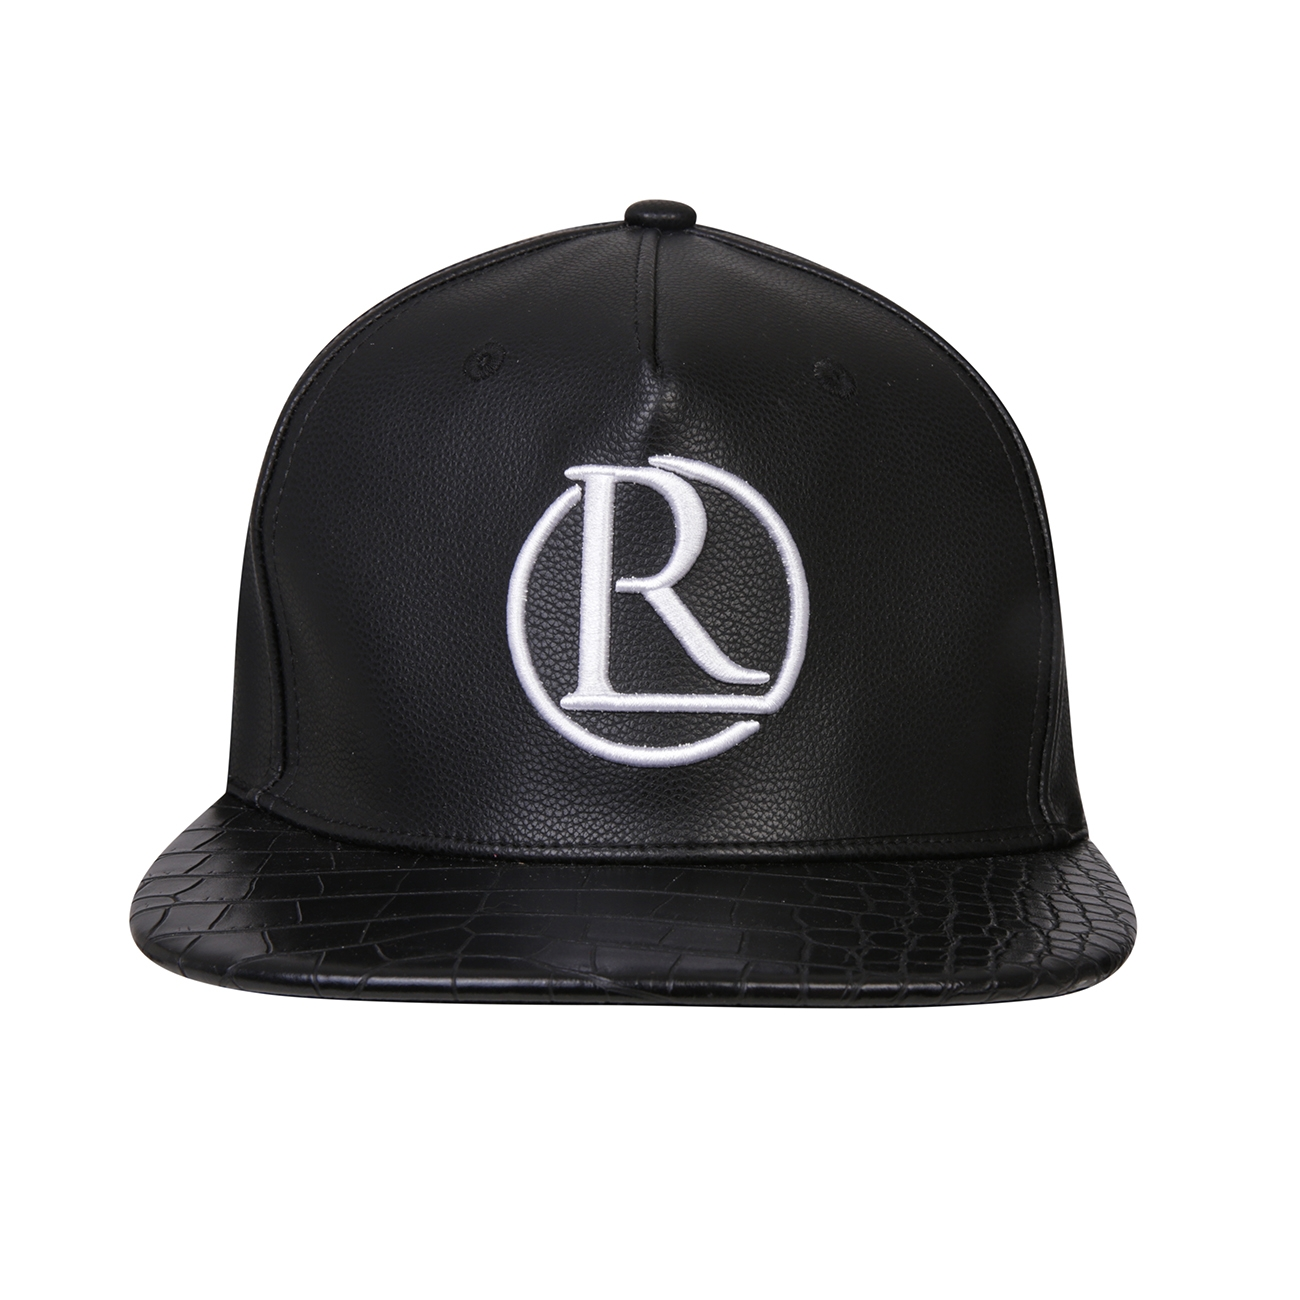 REG31 Black Faux Leather Reganalds Logo Cap